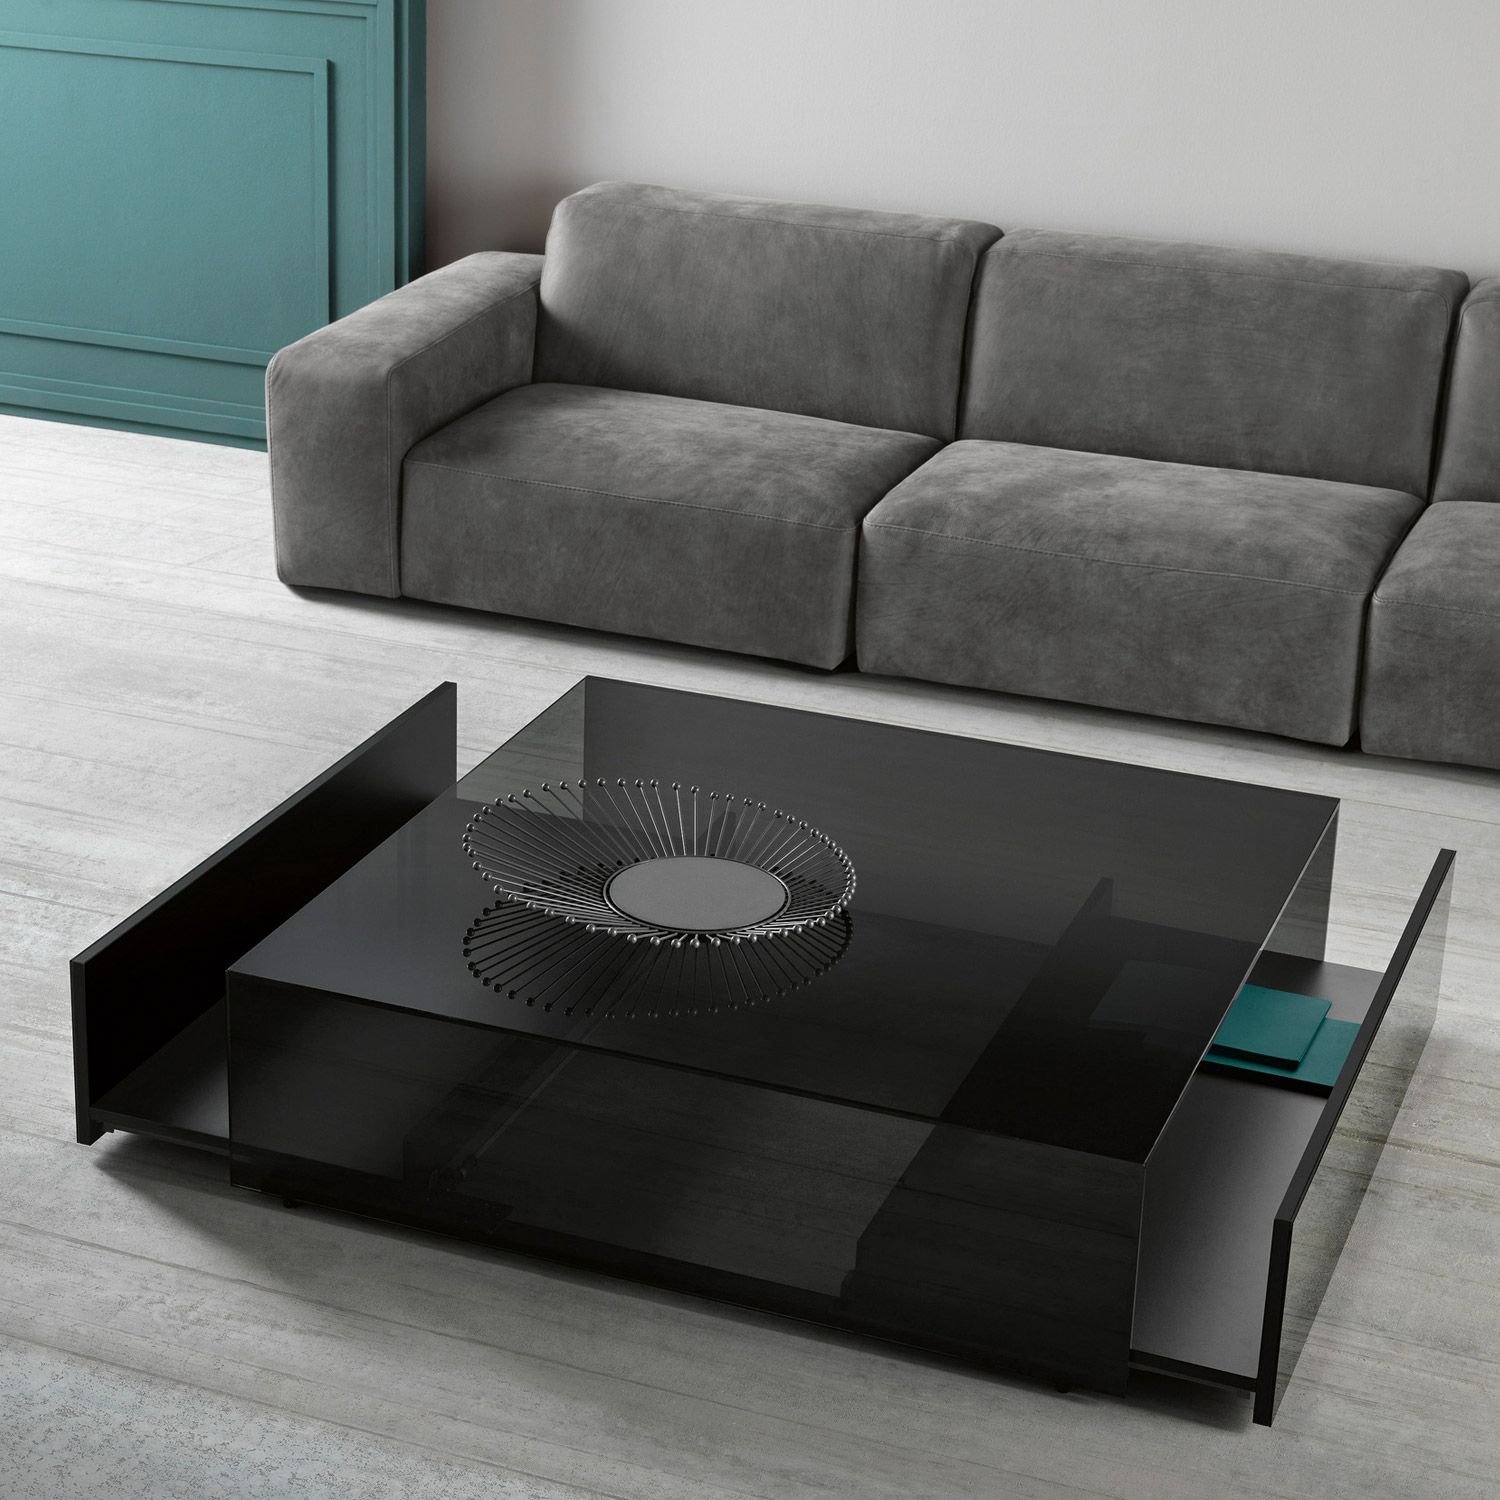 Table Black Coffee Table With Brown Couch Black Coffee Table With